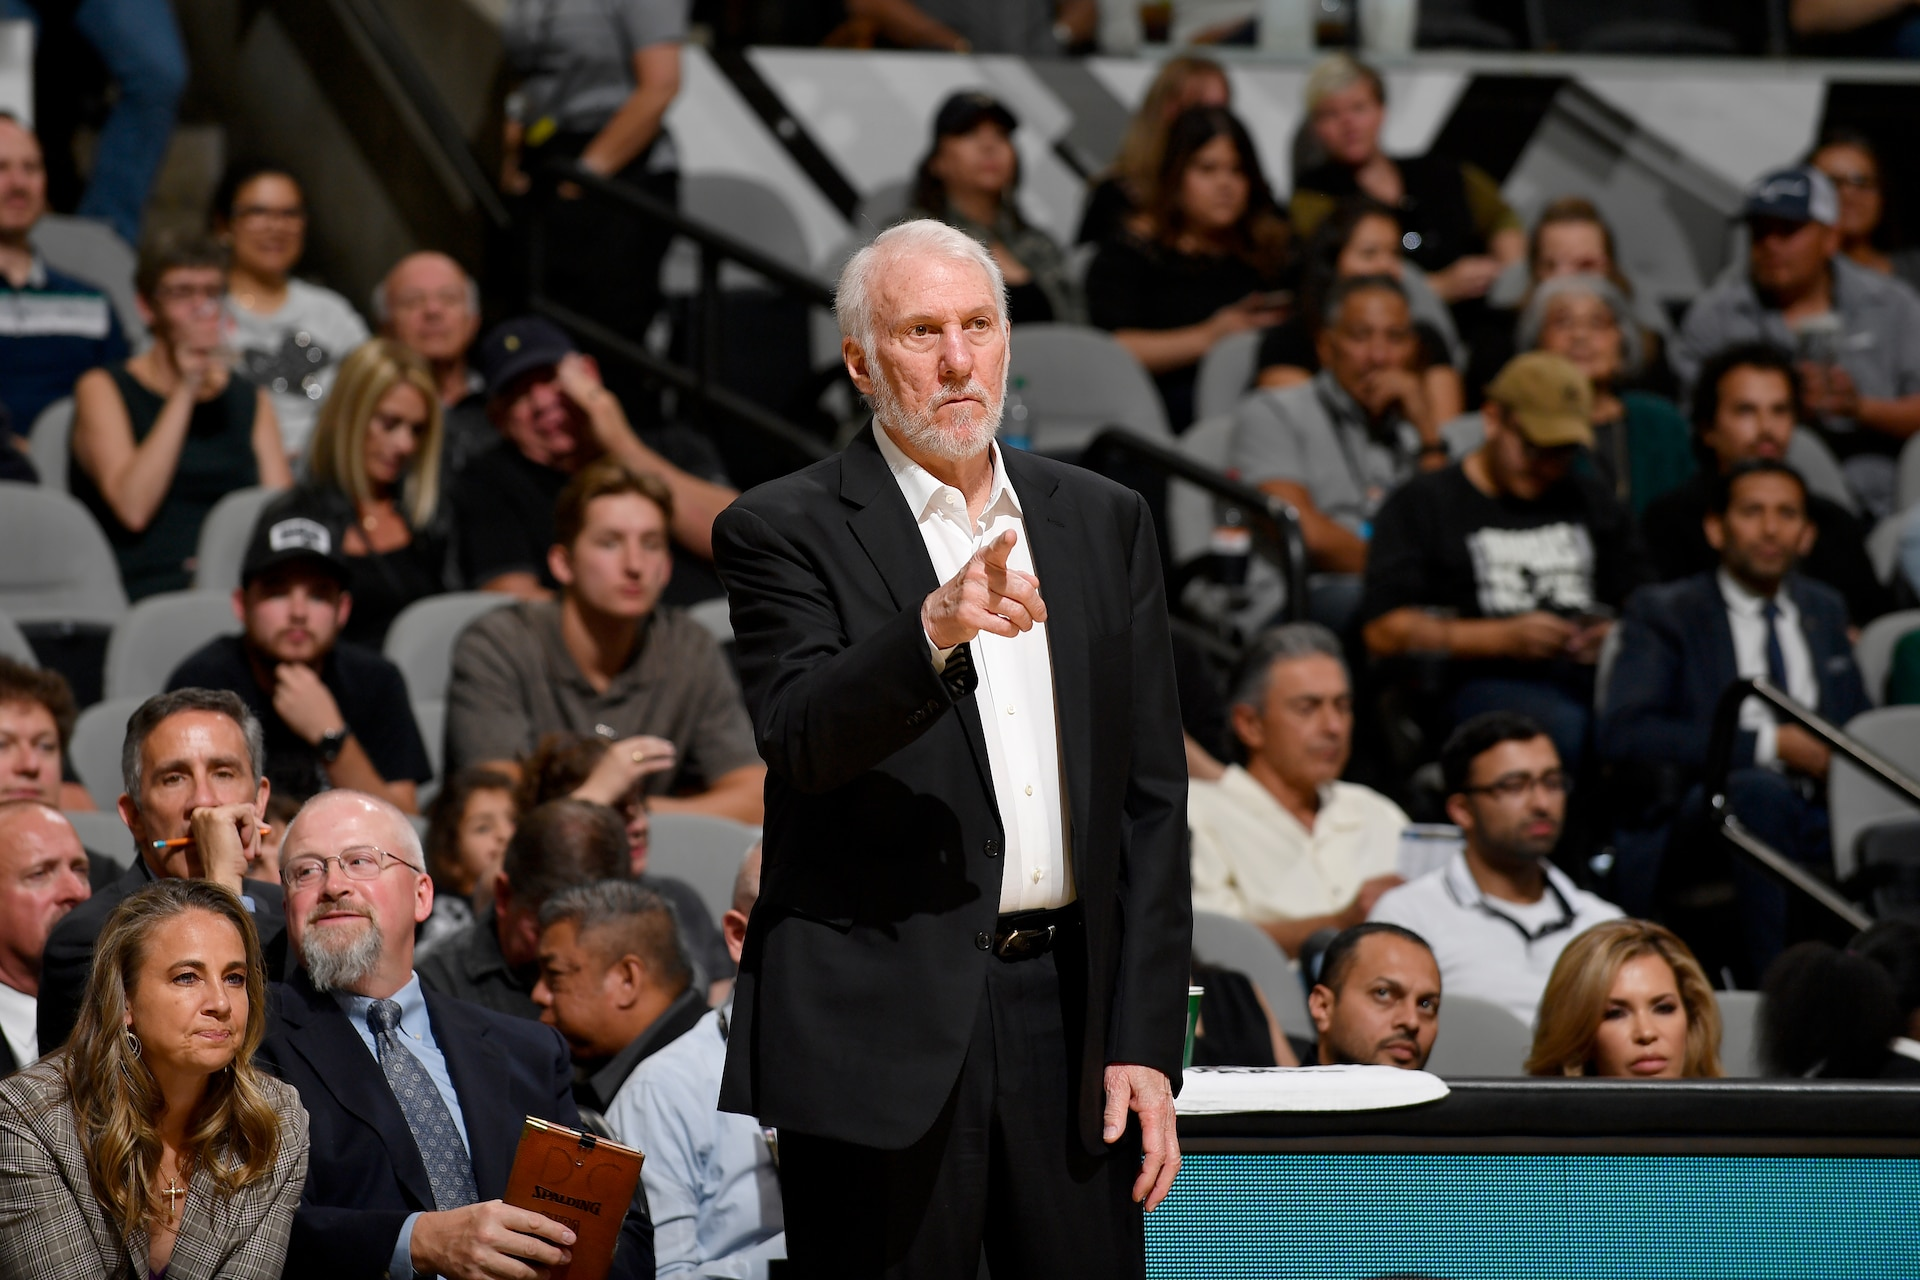 Gregg Popovich delivers stirring statement as Spurs focus on race